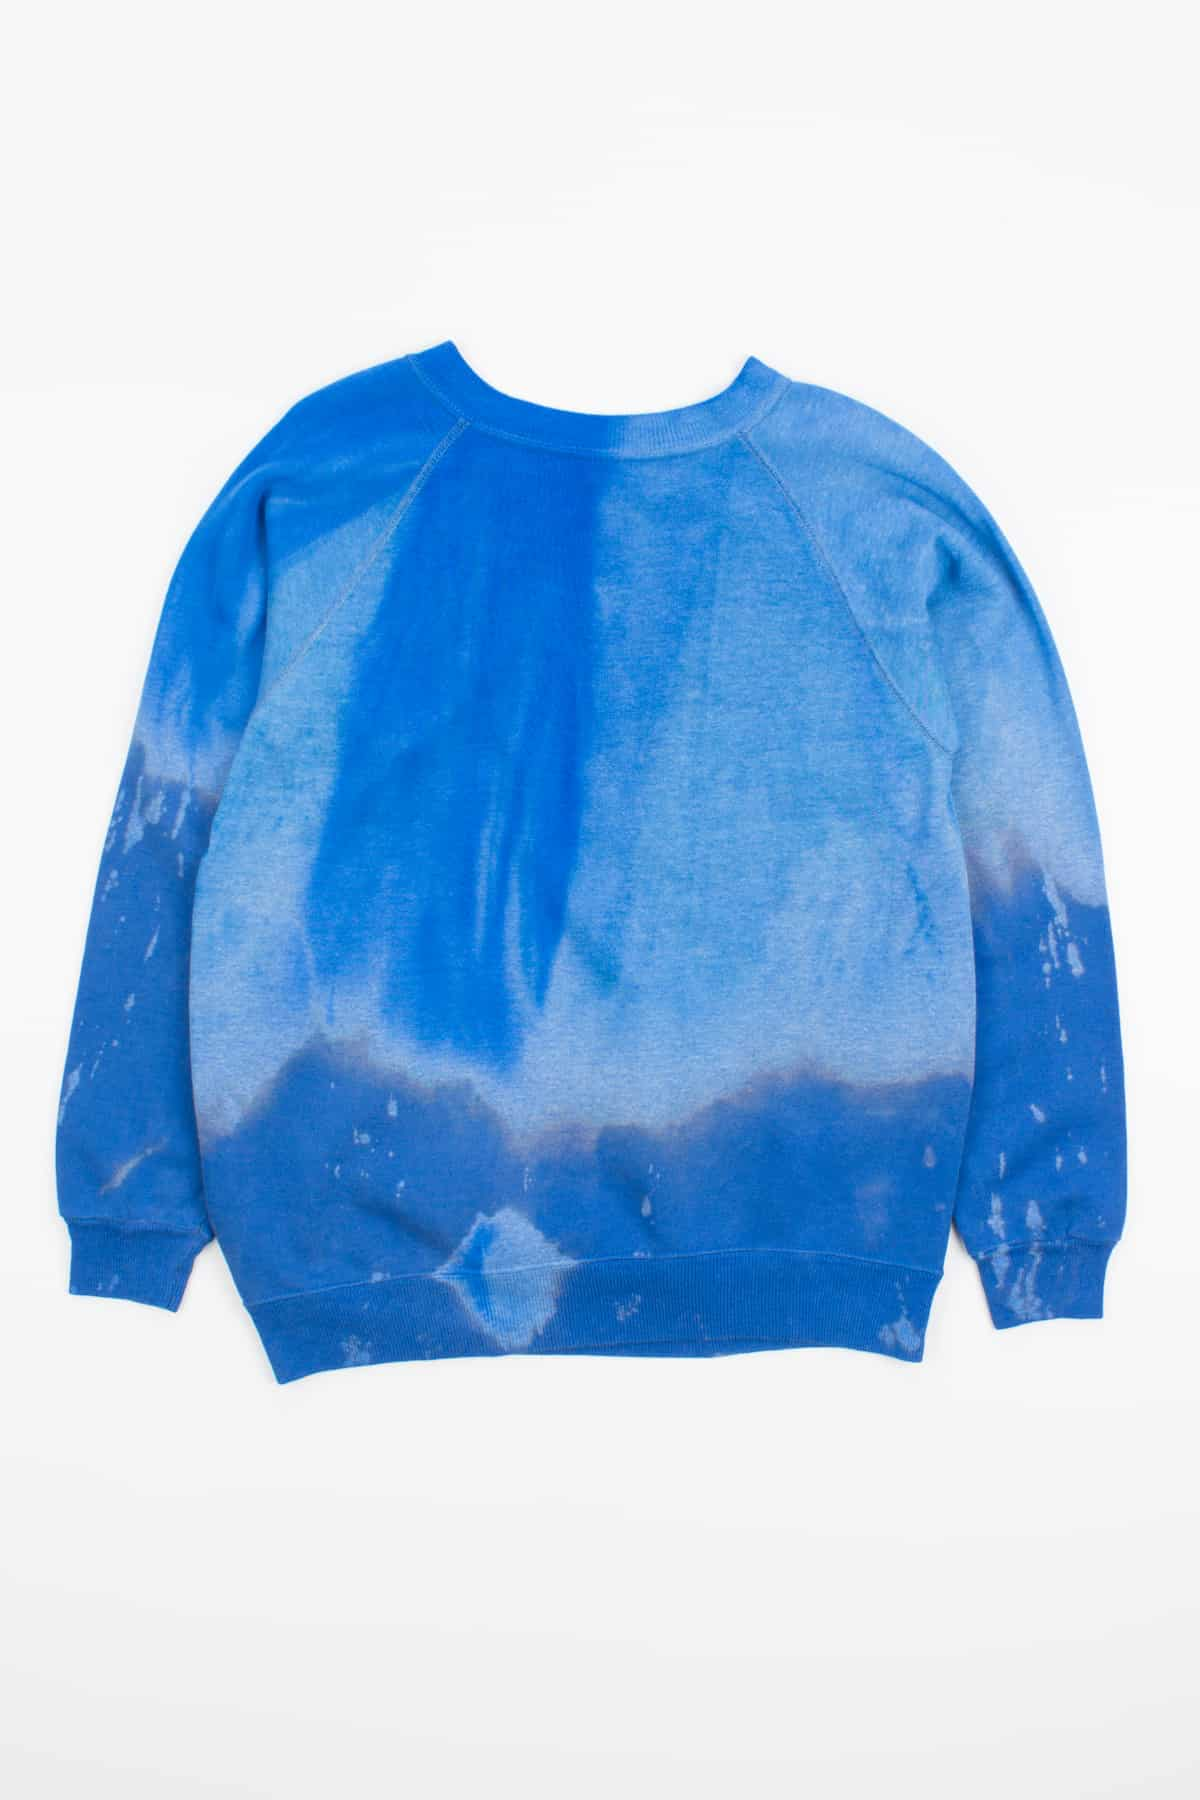 Royal Blue Bleached Dipped Vintage Sweatshirt